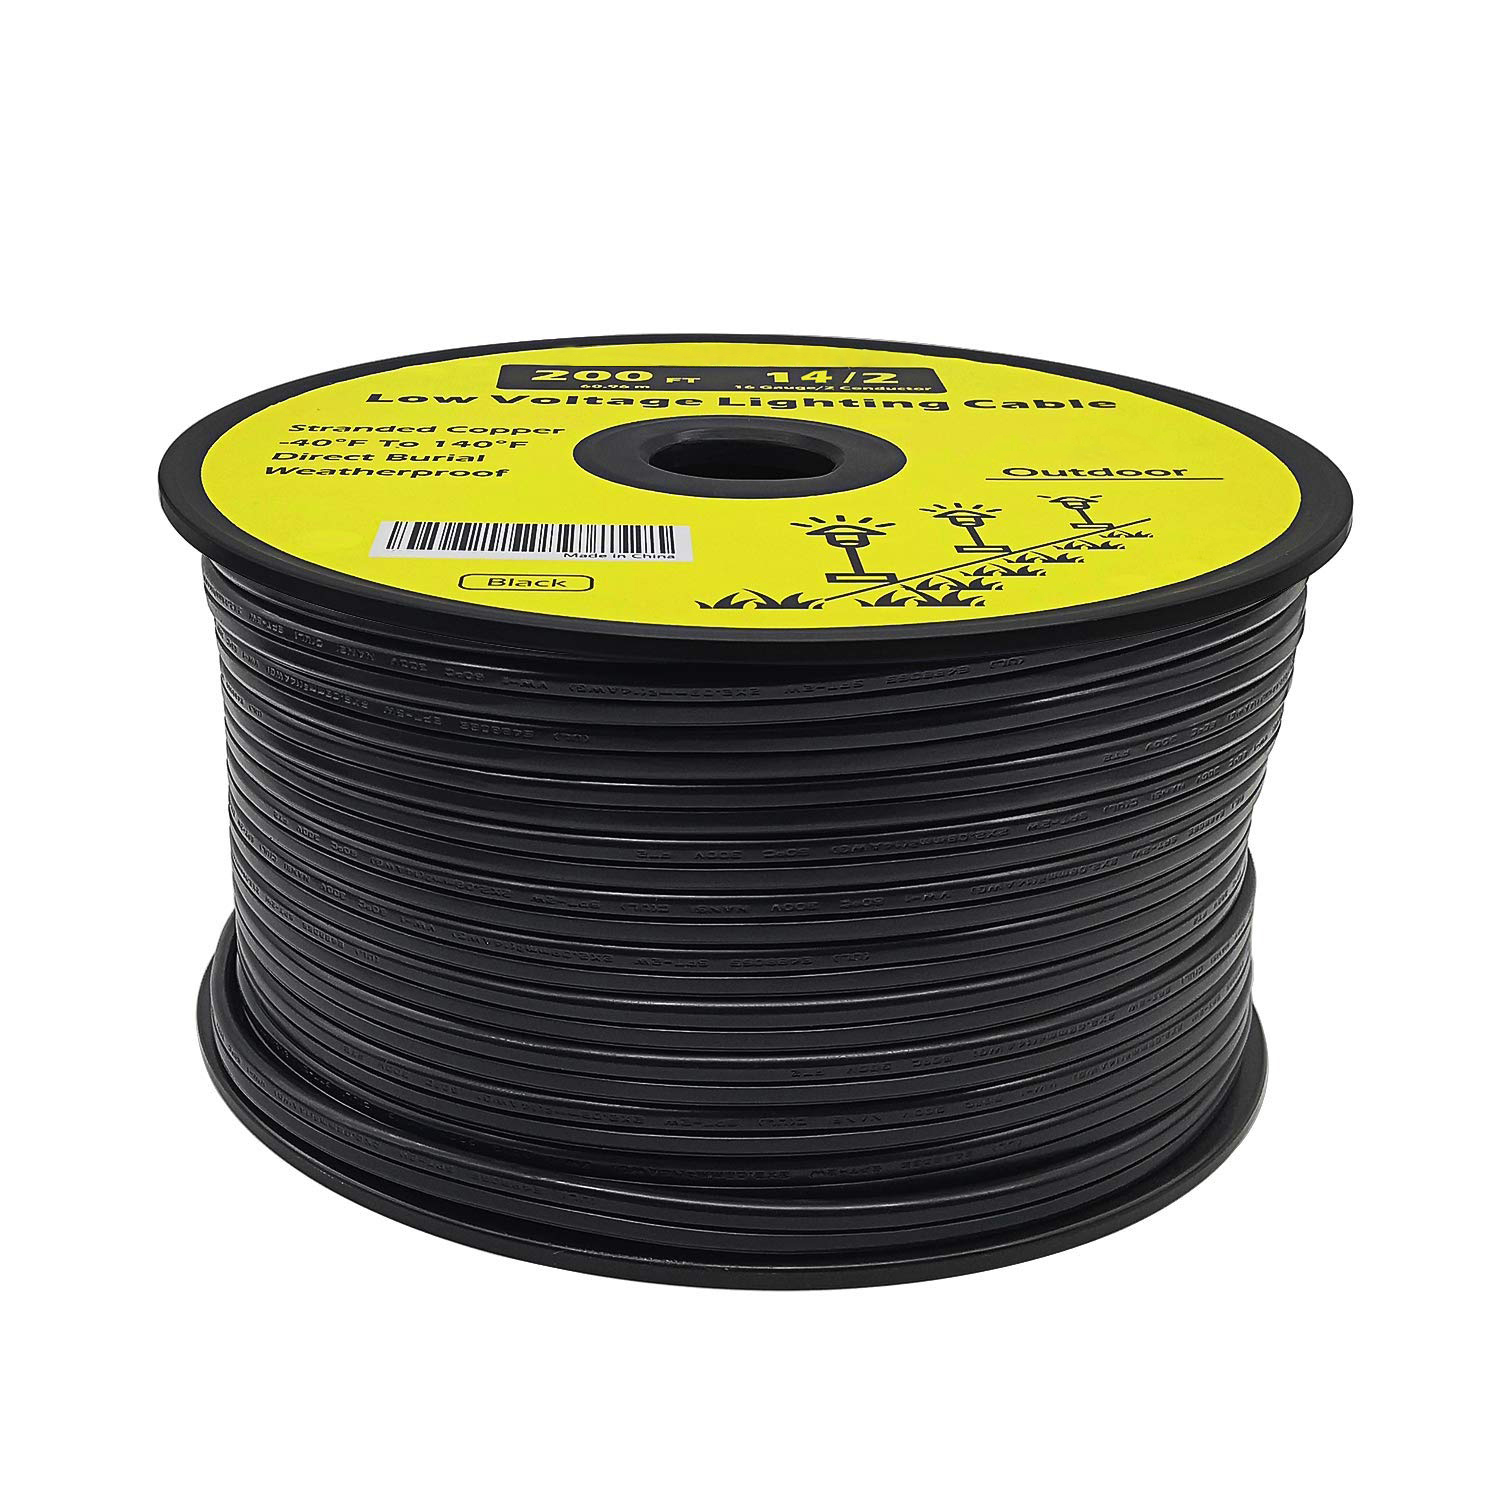 500ft 16 2 low voltage lighting wire landscape cable copper ul listed buy low voltage cable outdoor landscape wire low voltage wire product on alibaba com